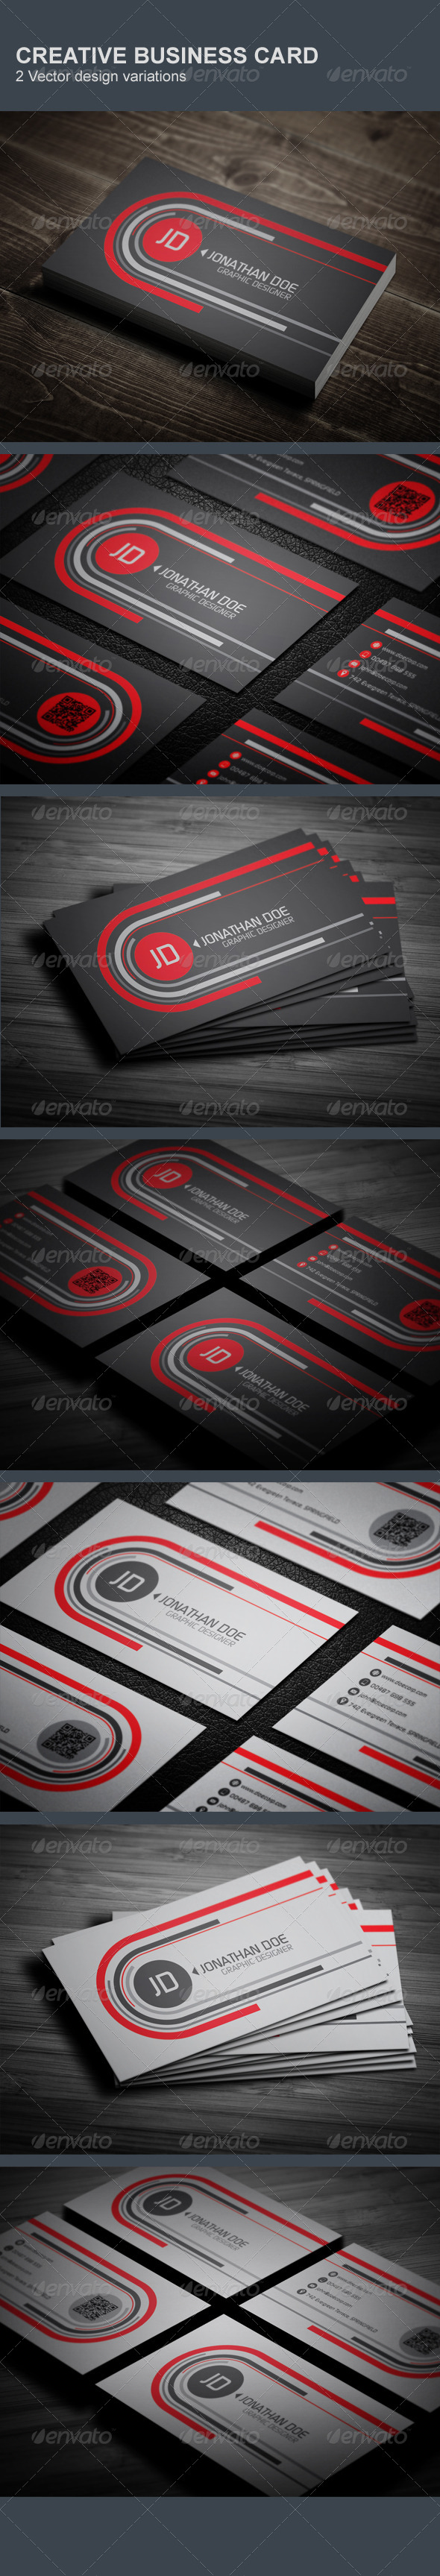 GraphicRiver Creative Business Card 5935492